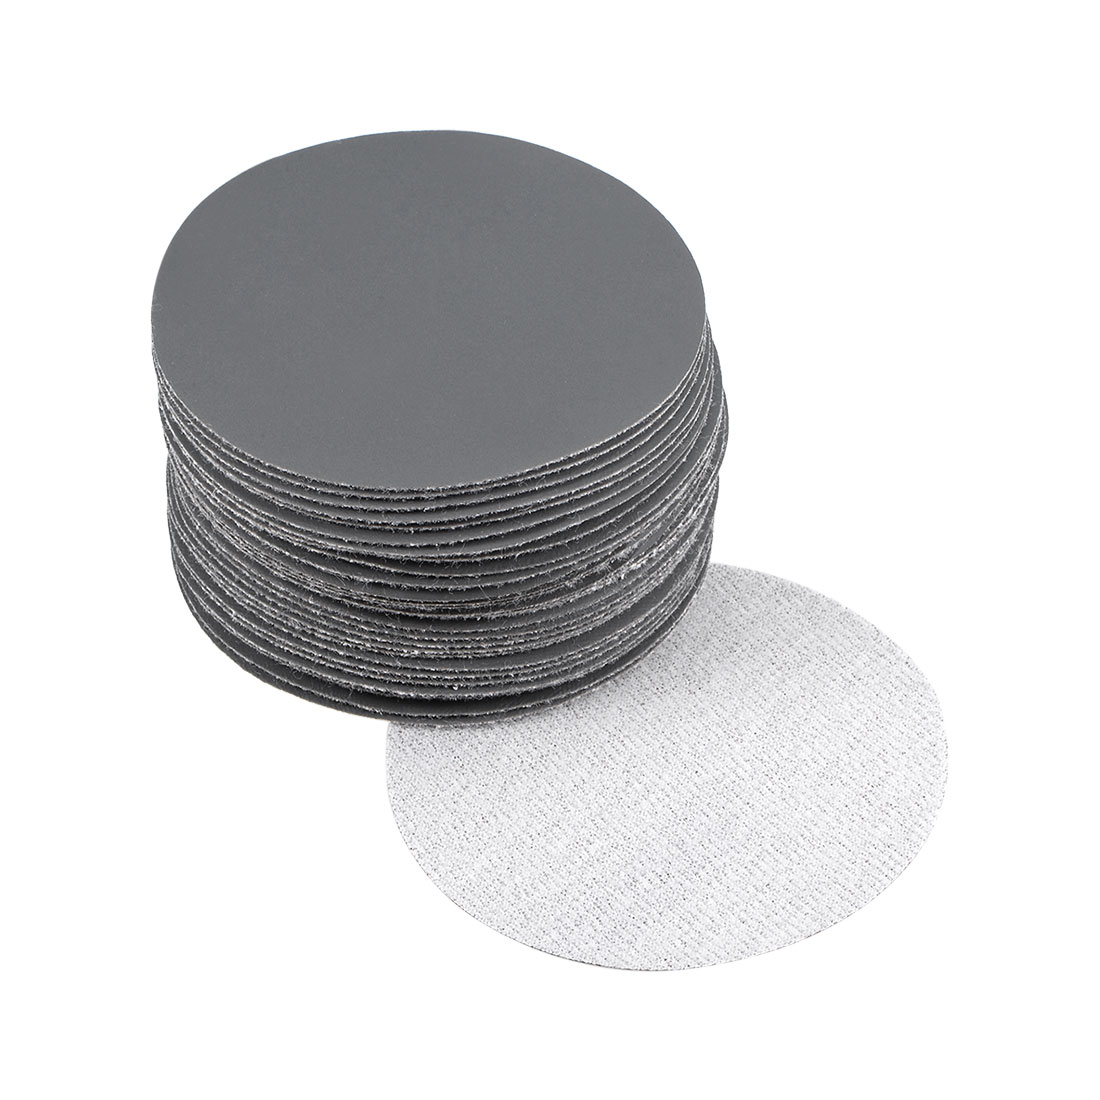 3 inch Wet Dry Discs 1500 Grit Hook and Loop Sanding Disc Silicon Carbide 30pcs